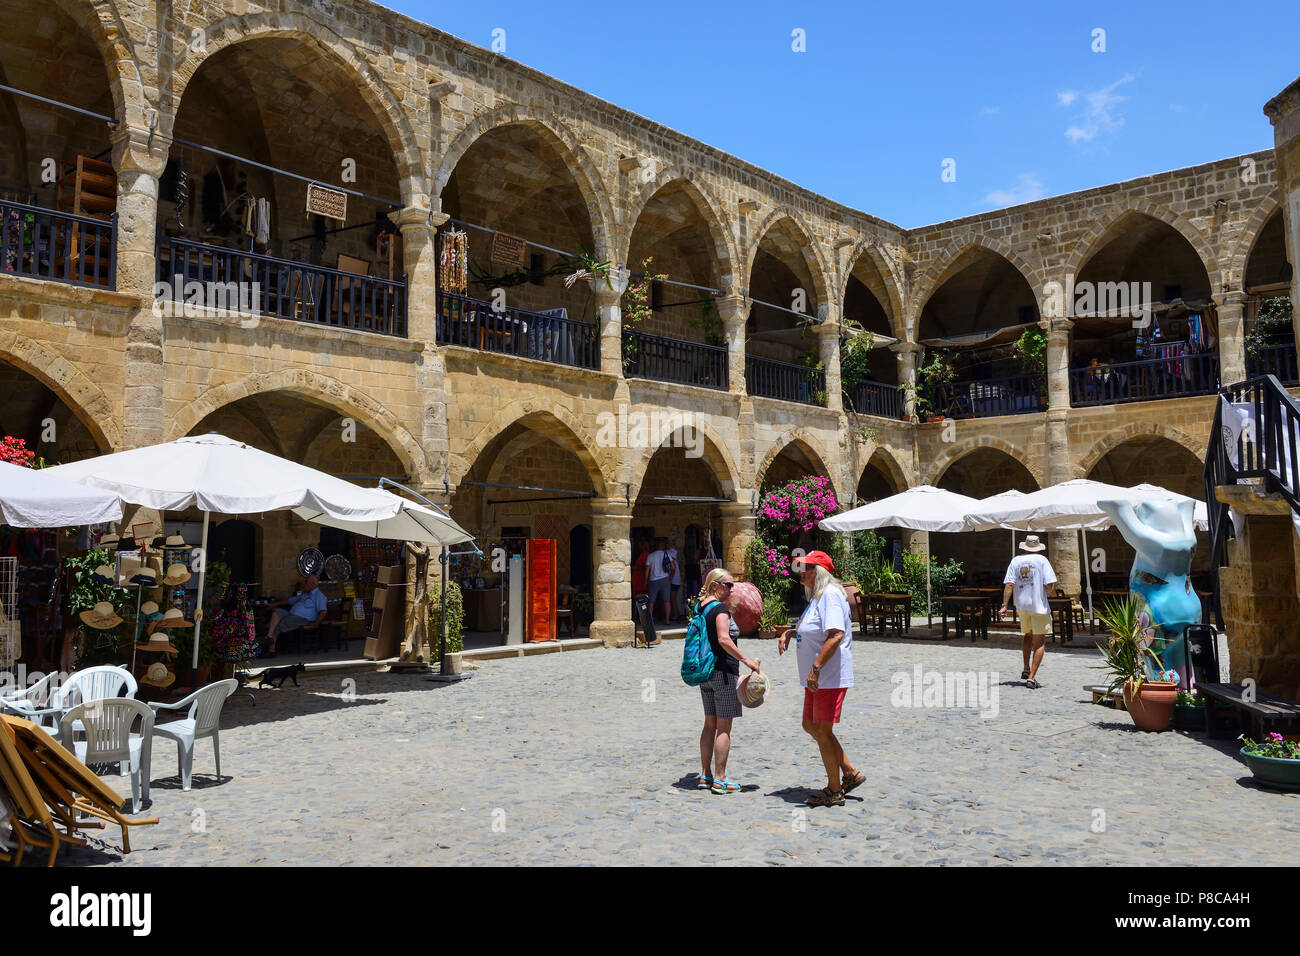 The courtyard of Buyuk Han, a former caravanserai, in North Nicosia (Lefkosa), Turkish Republic of Northern Cyprus - Stock Image